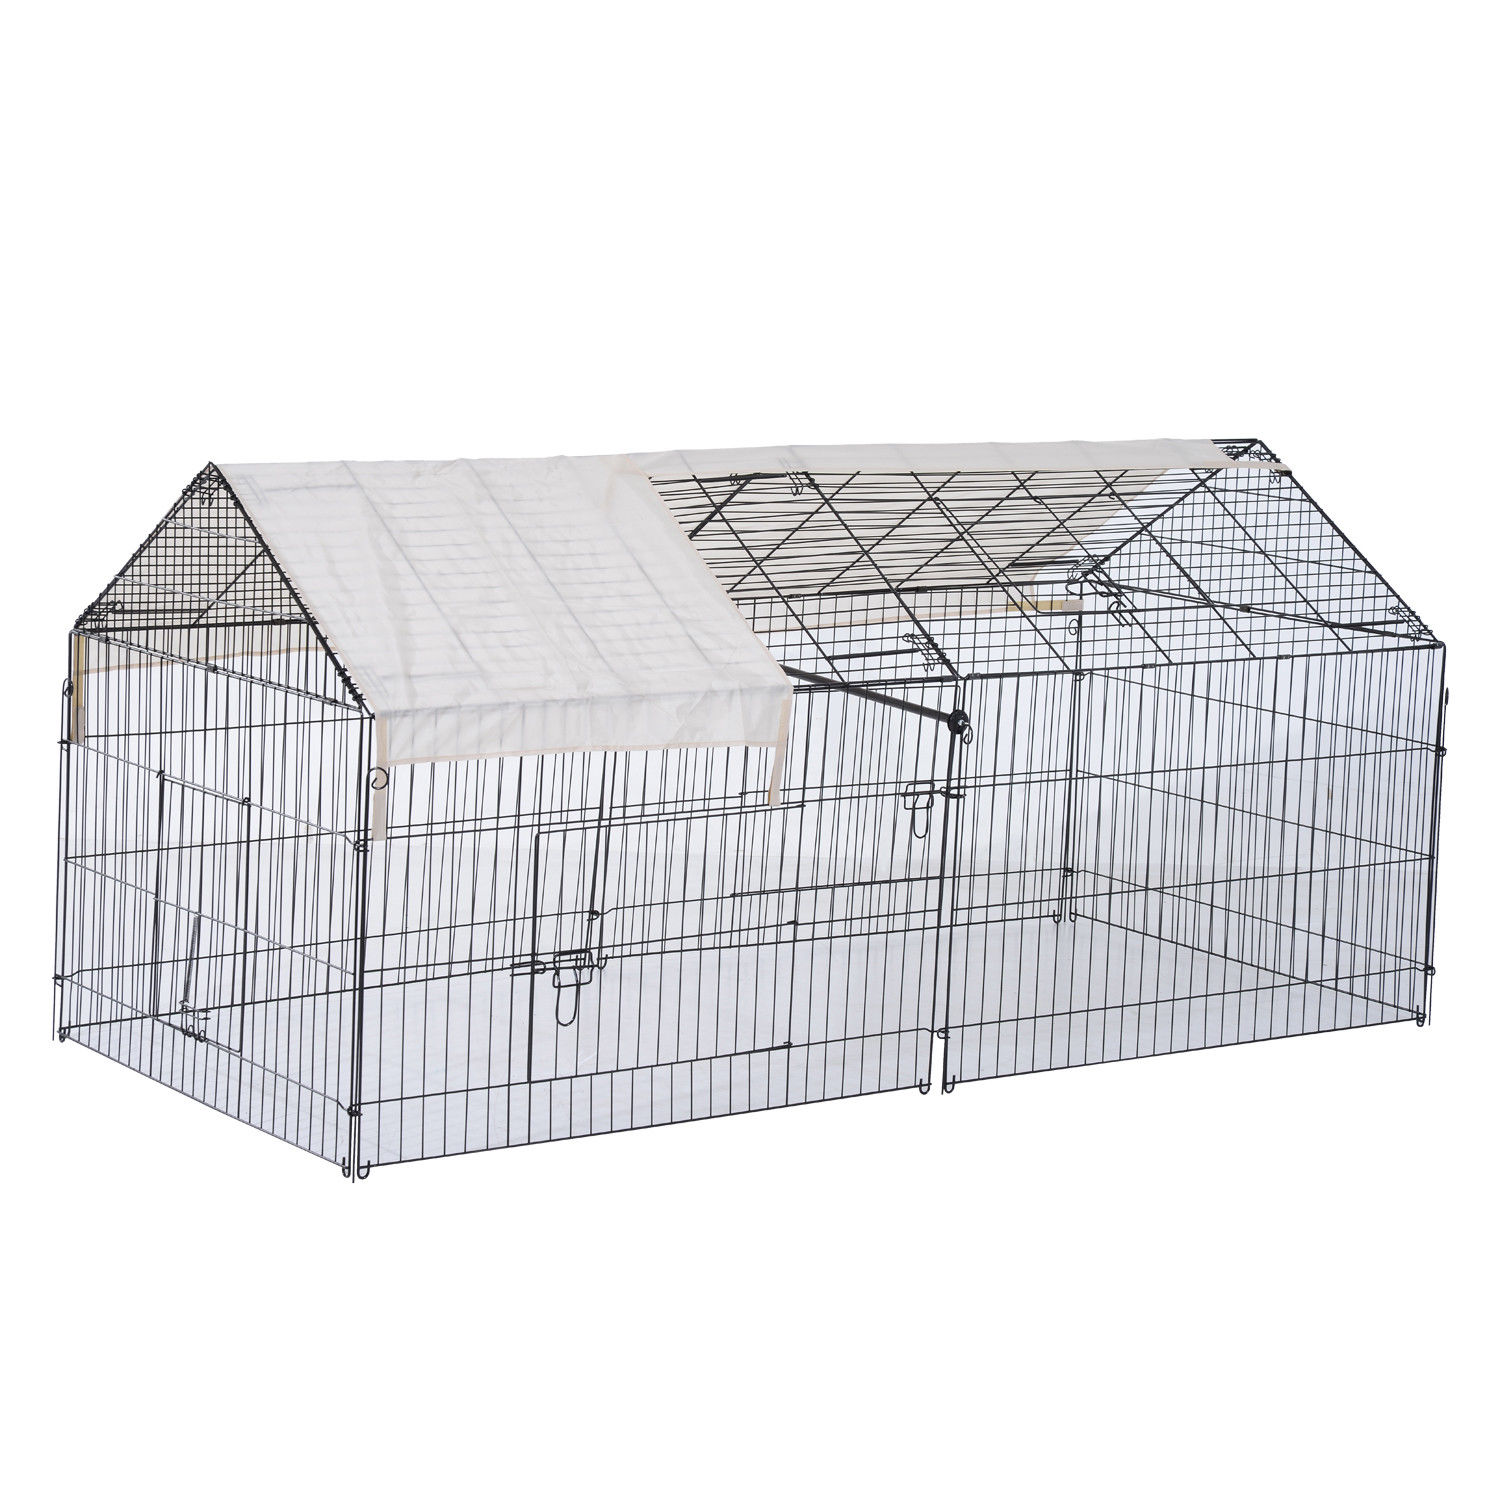 87x41x41-IN-Small-Animal-Enclosure-Rabbit-Dog-Pet-Metal-Cage-Run-Play-with-Cover